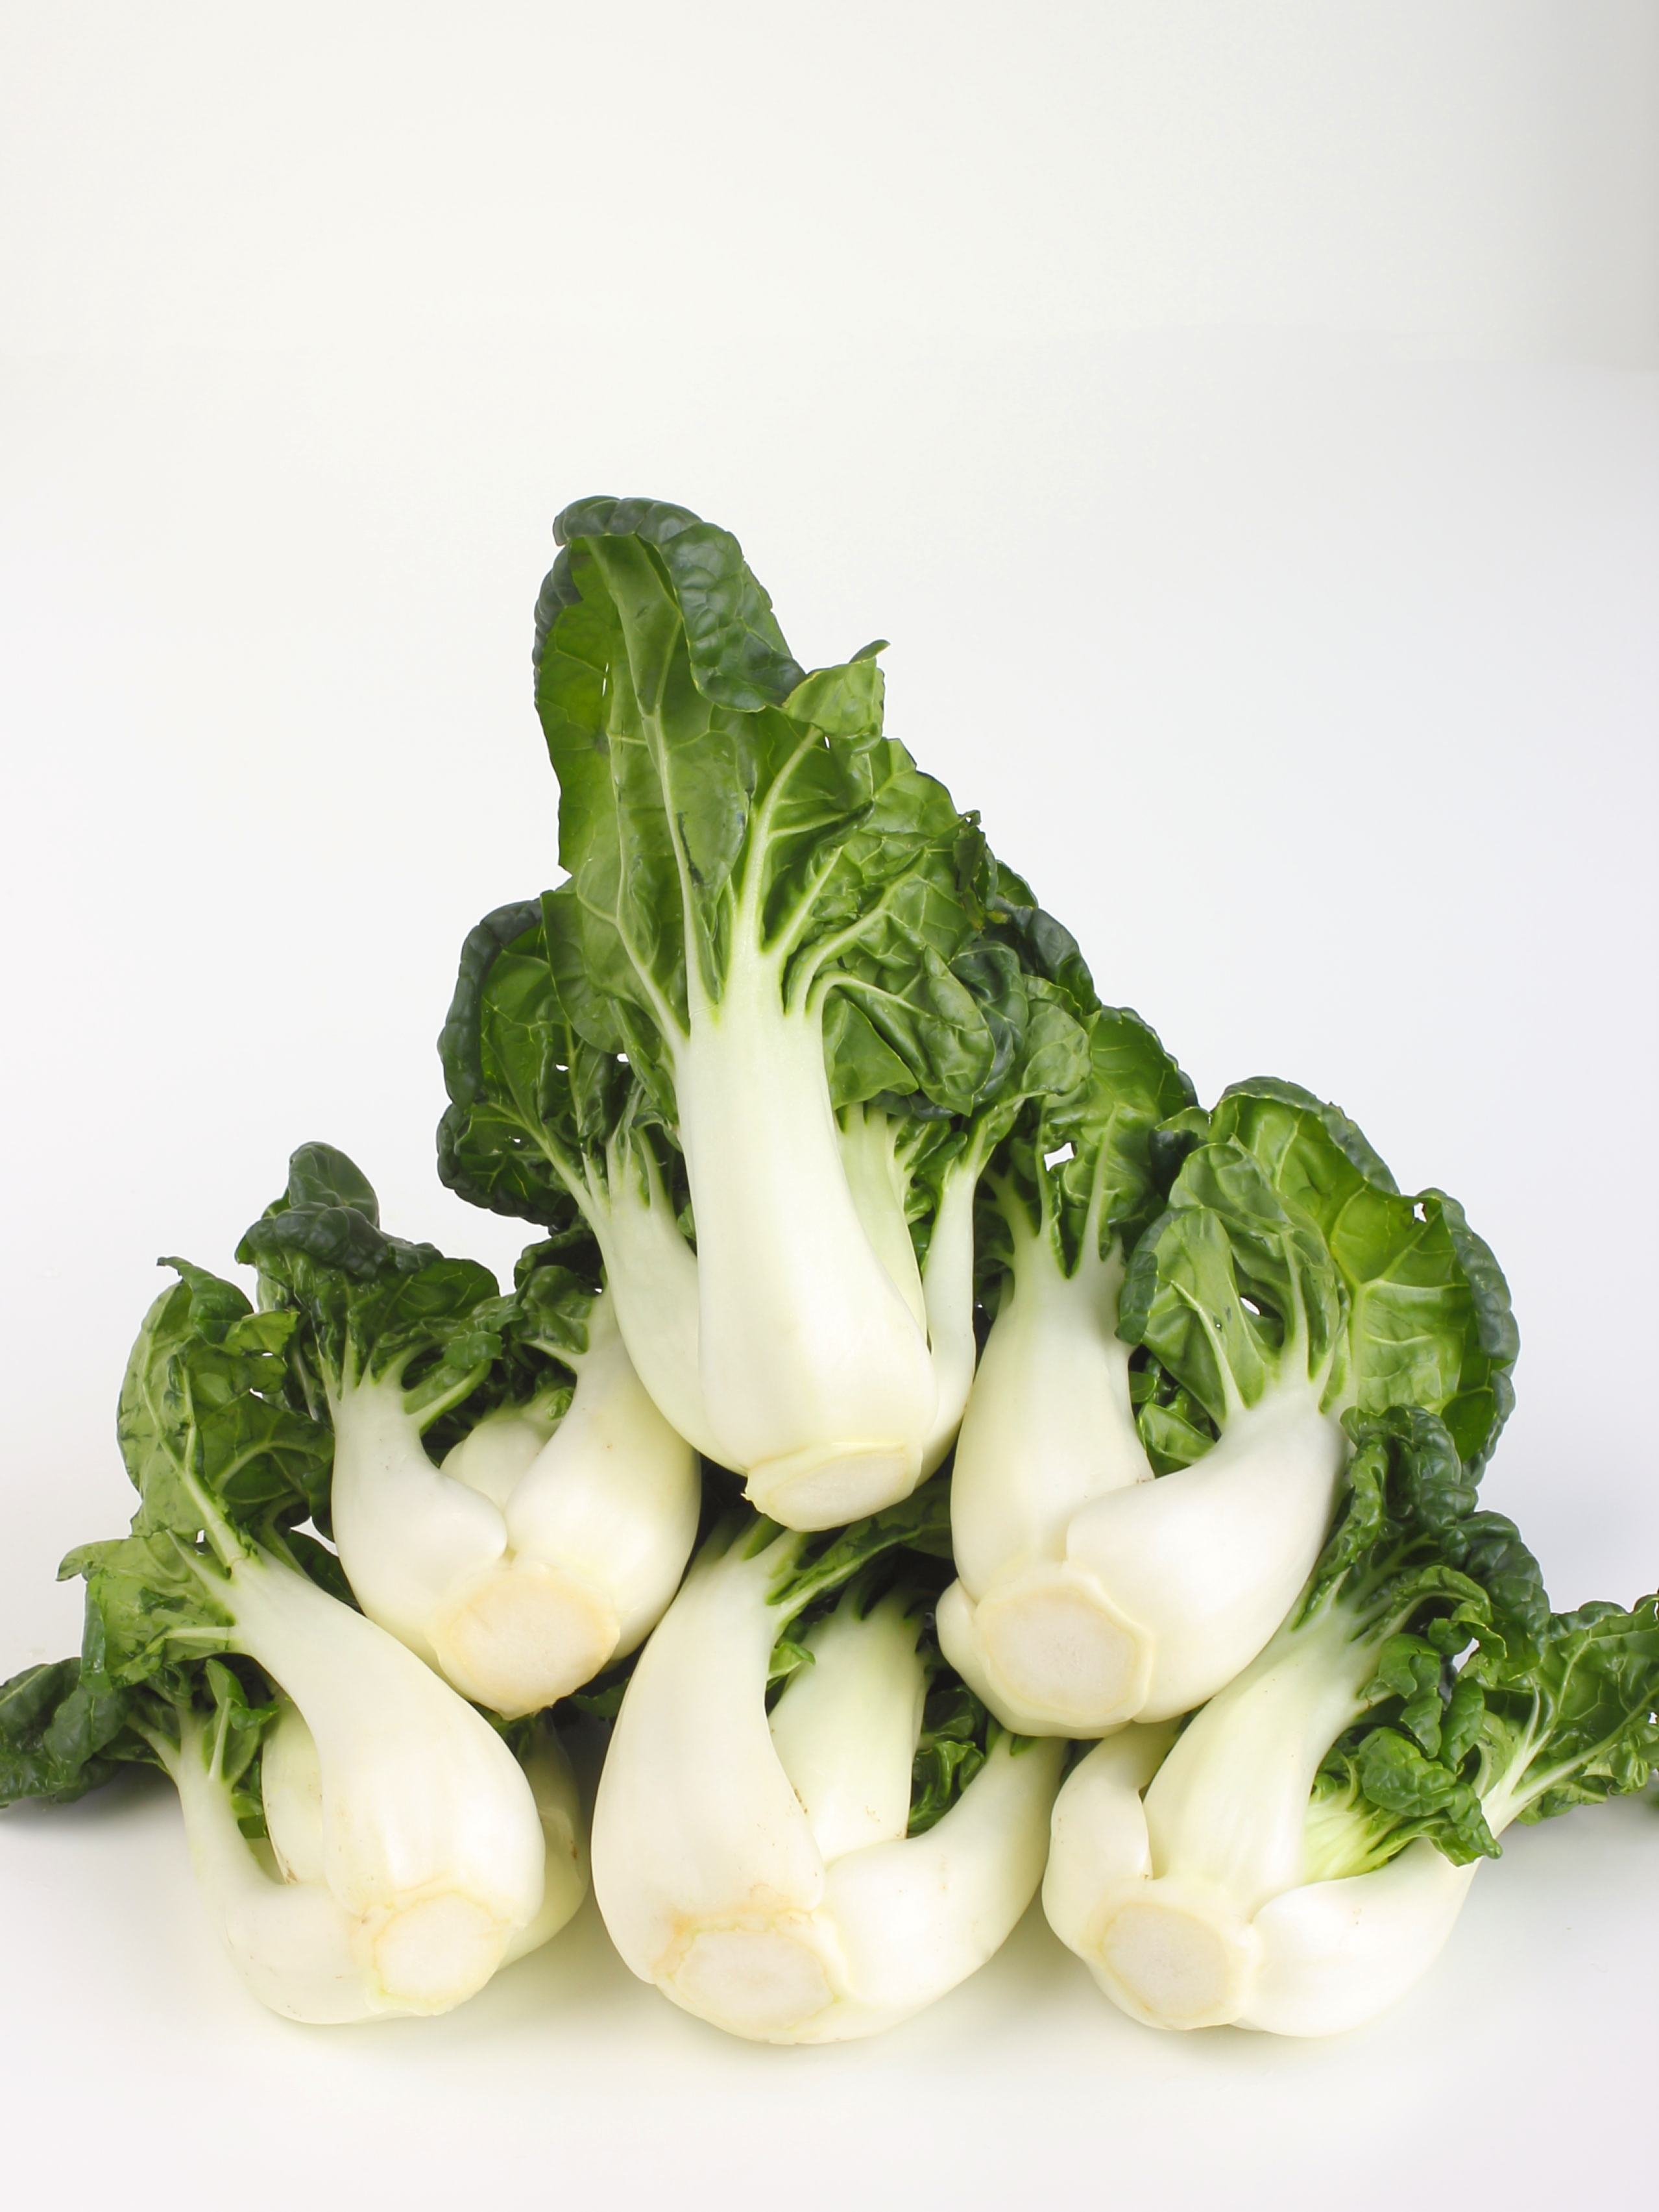 how to choose bok choy